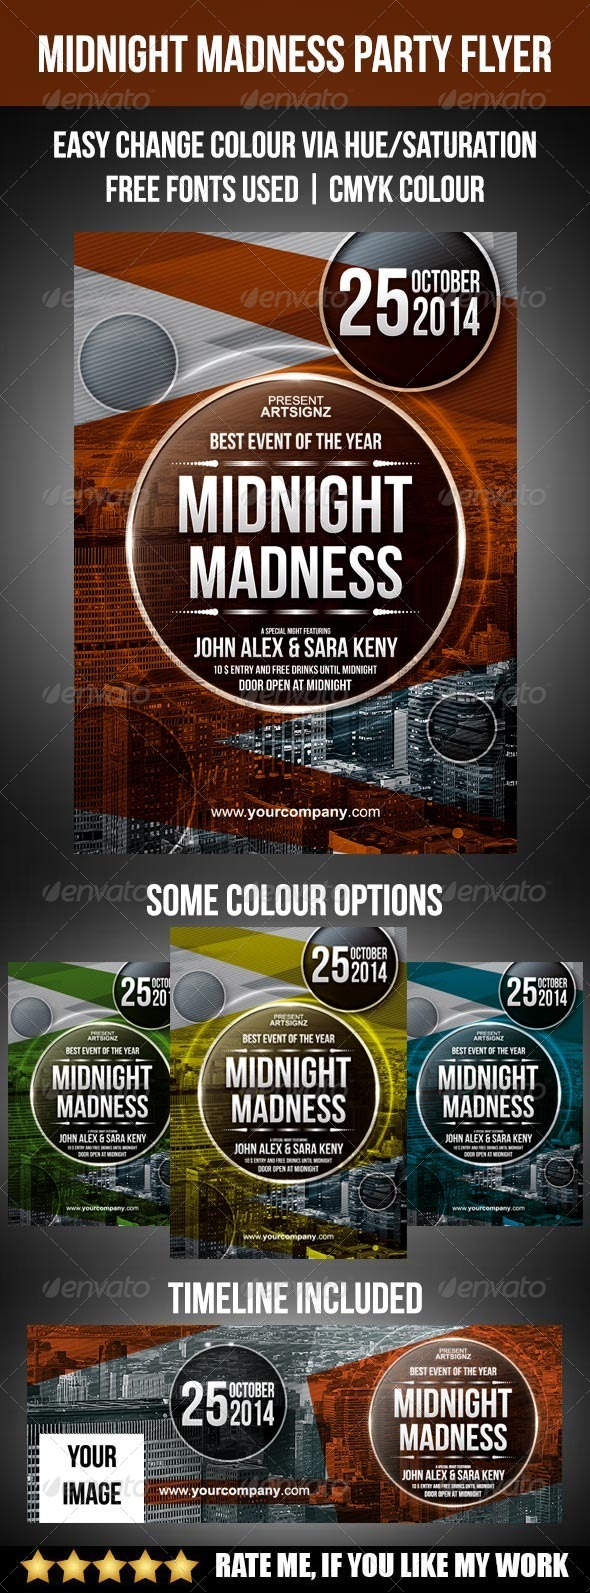 GraphicRiver Midnight Madness Party Flyer 8240247